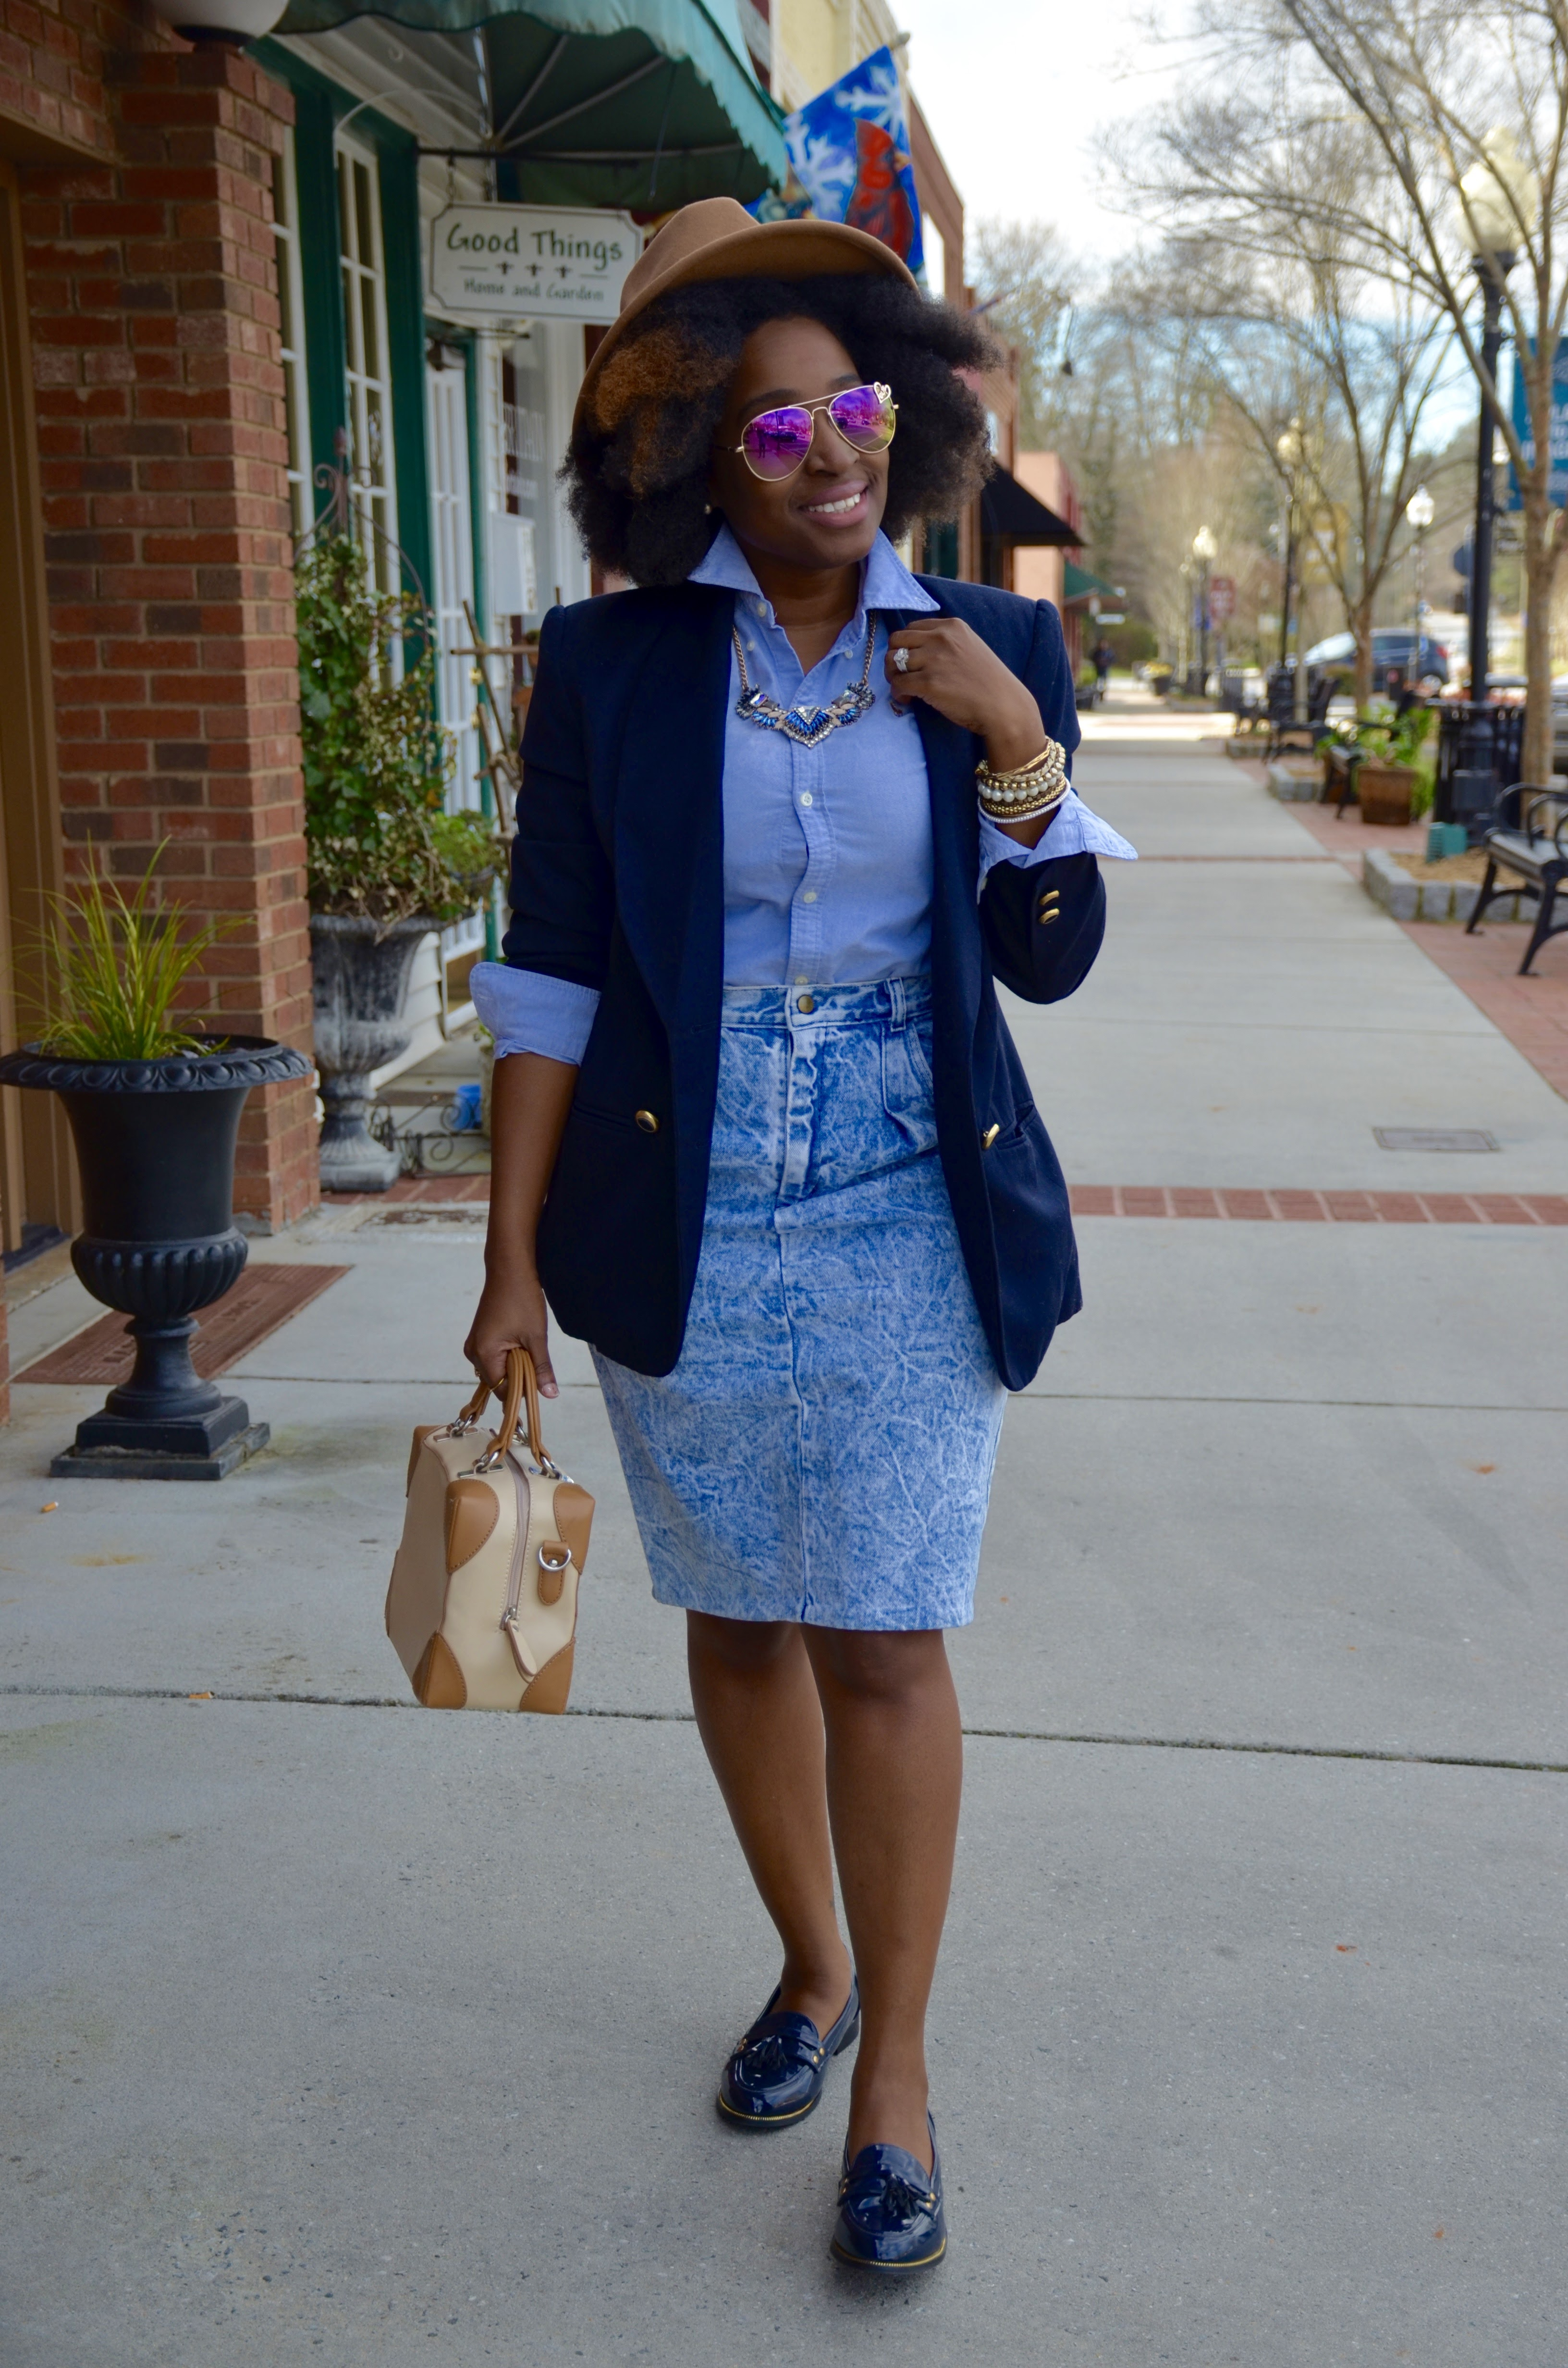 Fashion Bombshell of the Day: Nicka from Congo